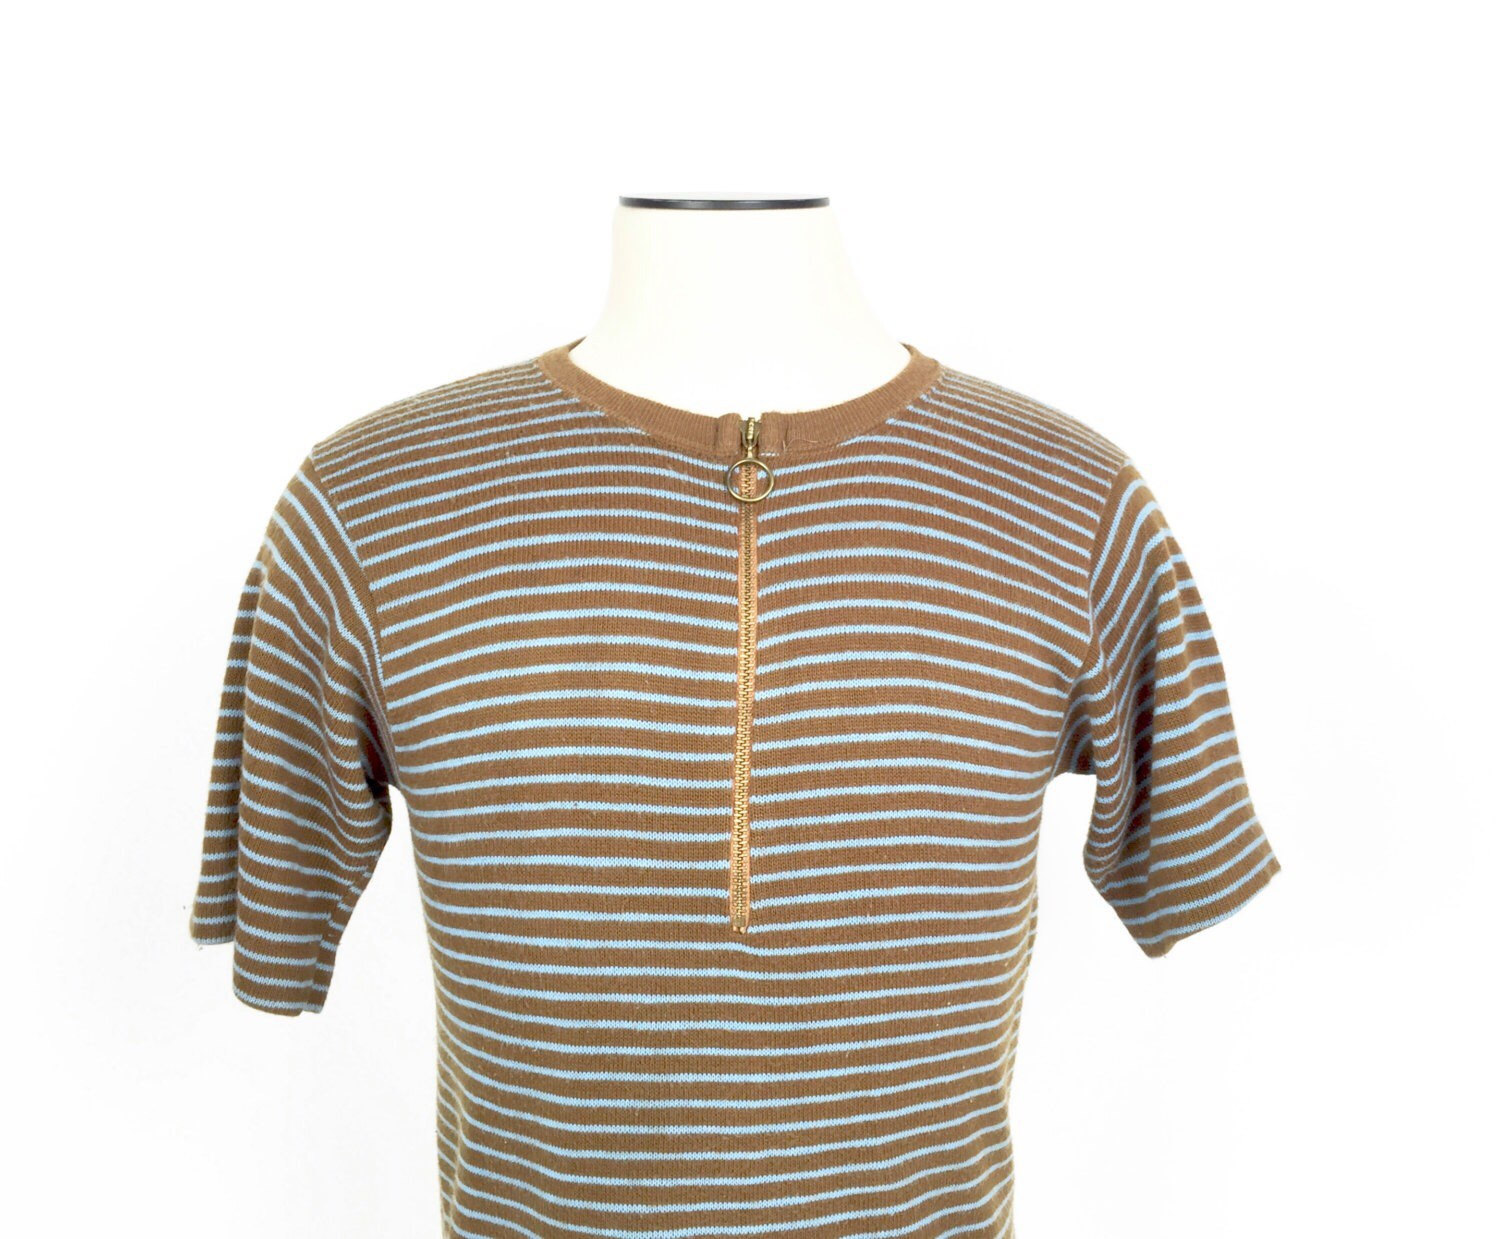 1960's zippered pullover sweater with a great zipper pull. Cool short sleeves!